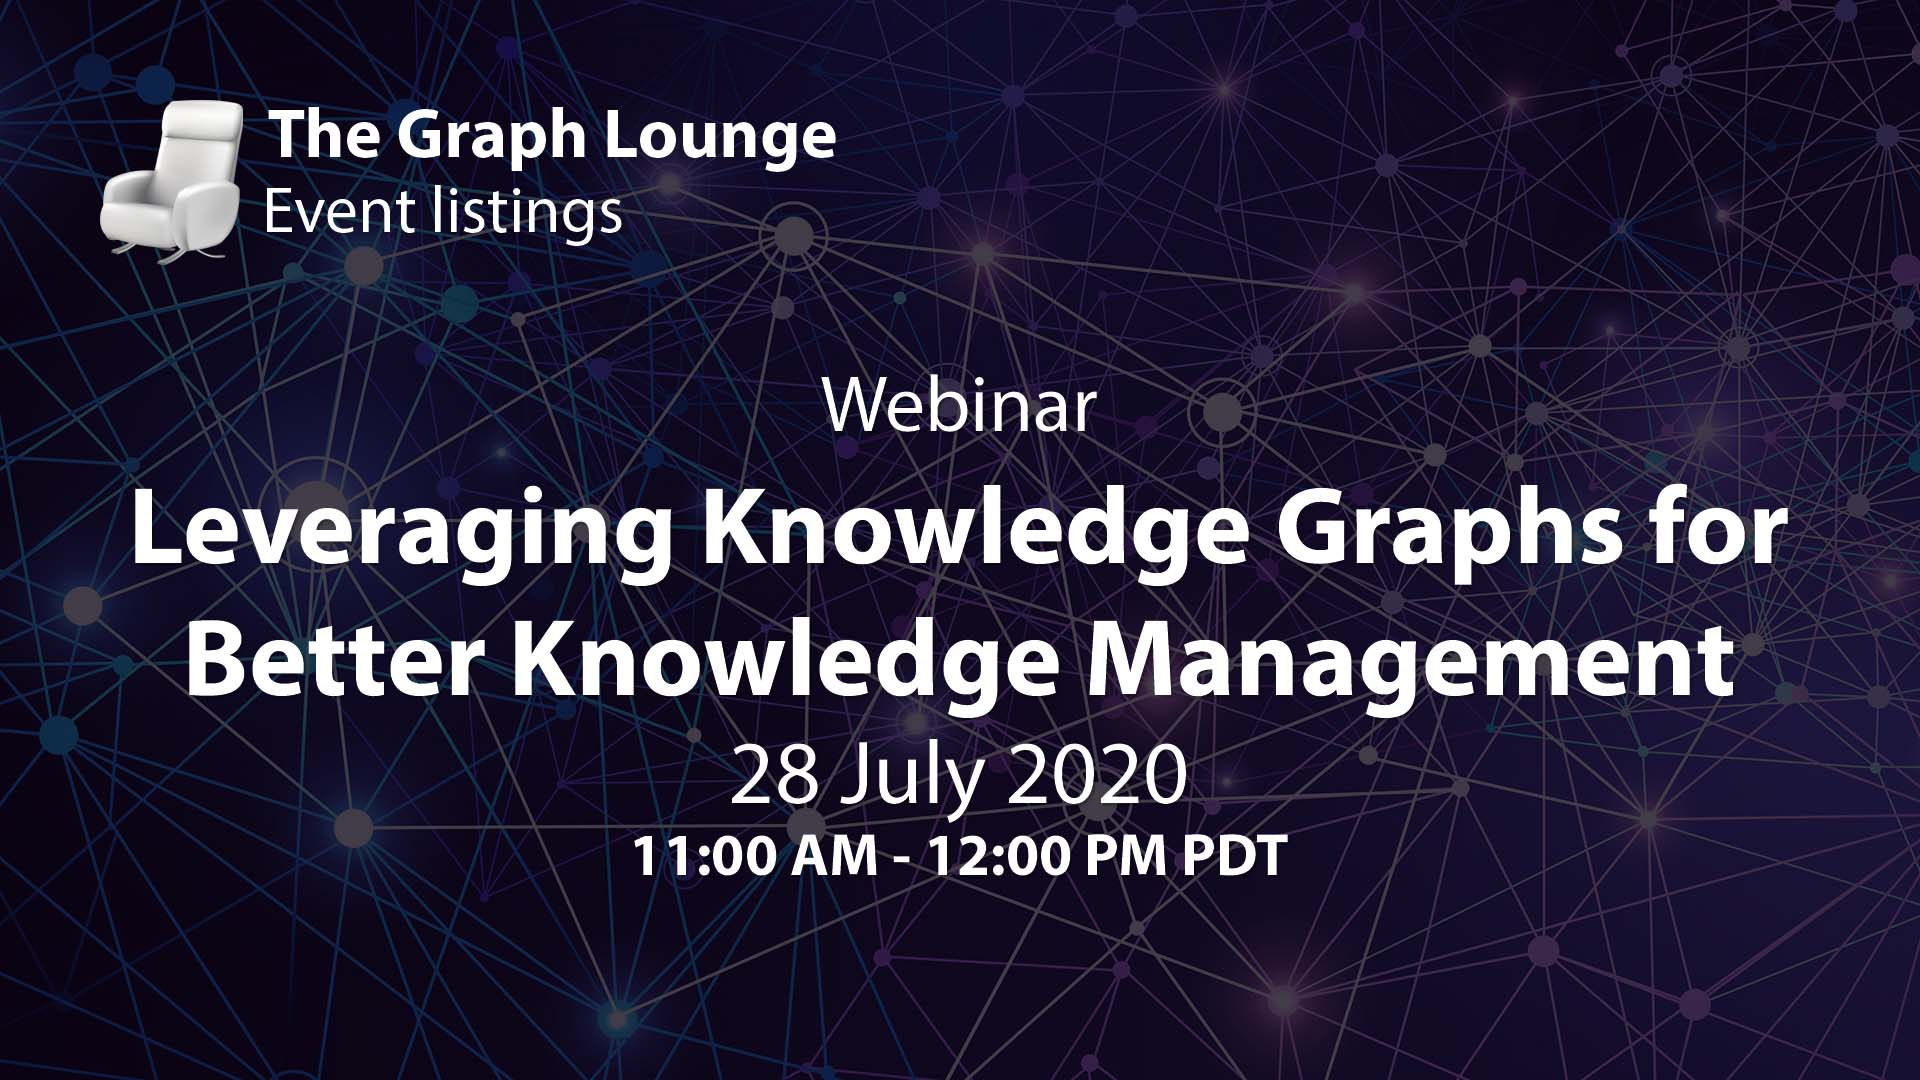 Leveraging Knowledge Graphs for Better Knowledge Management